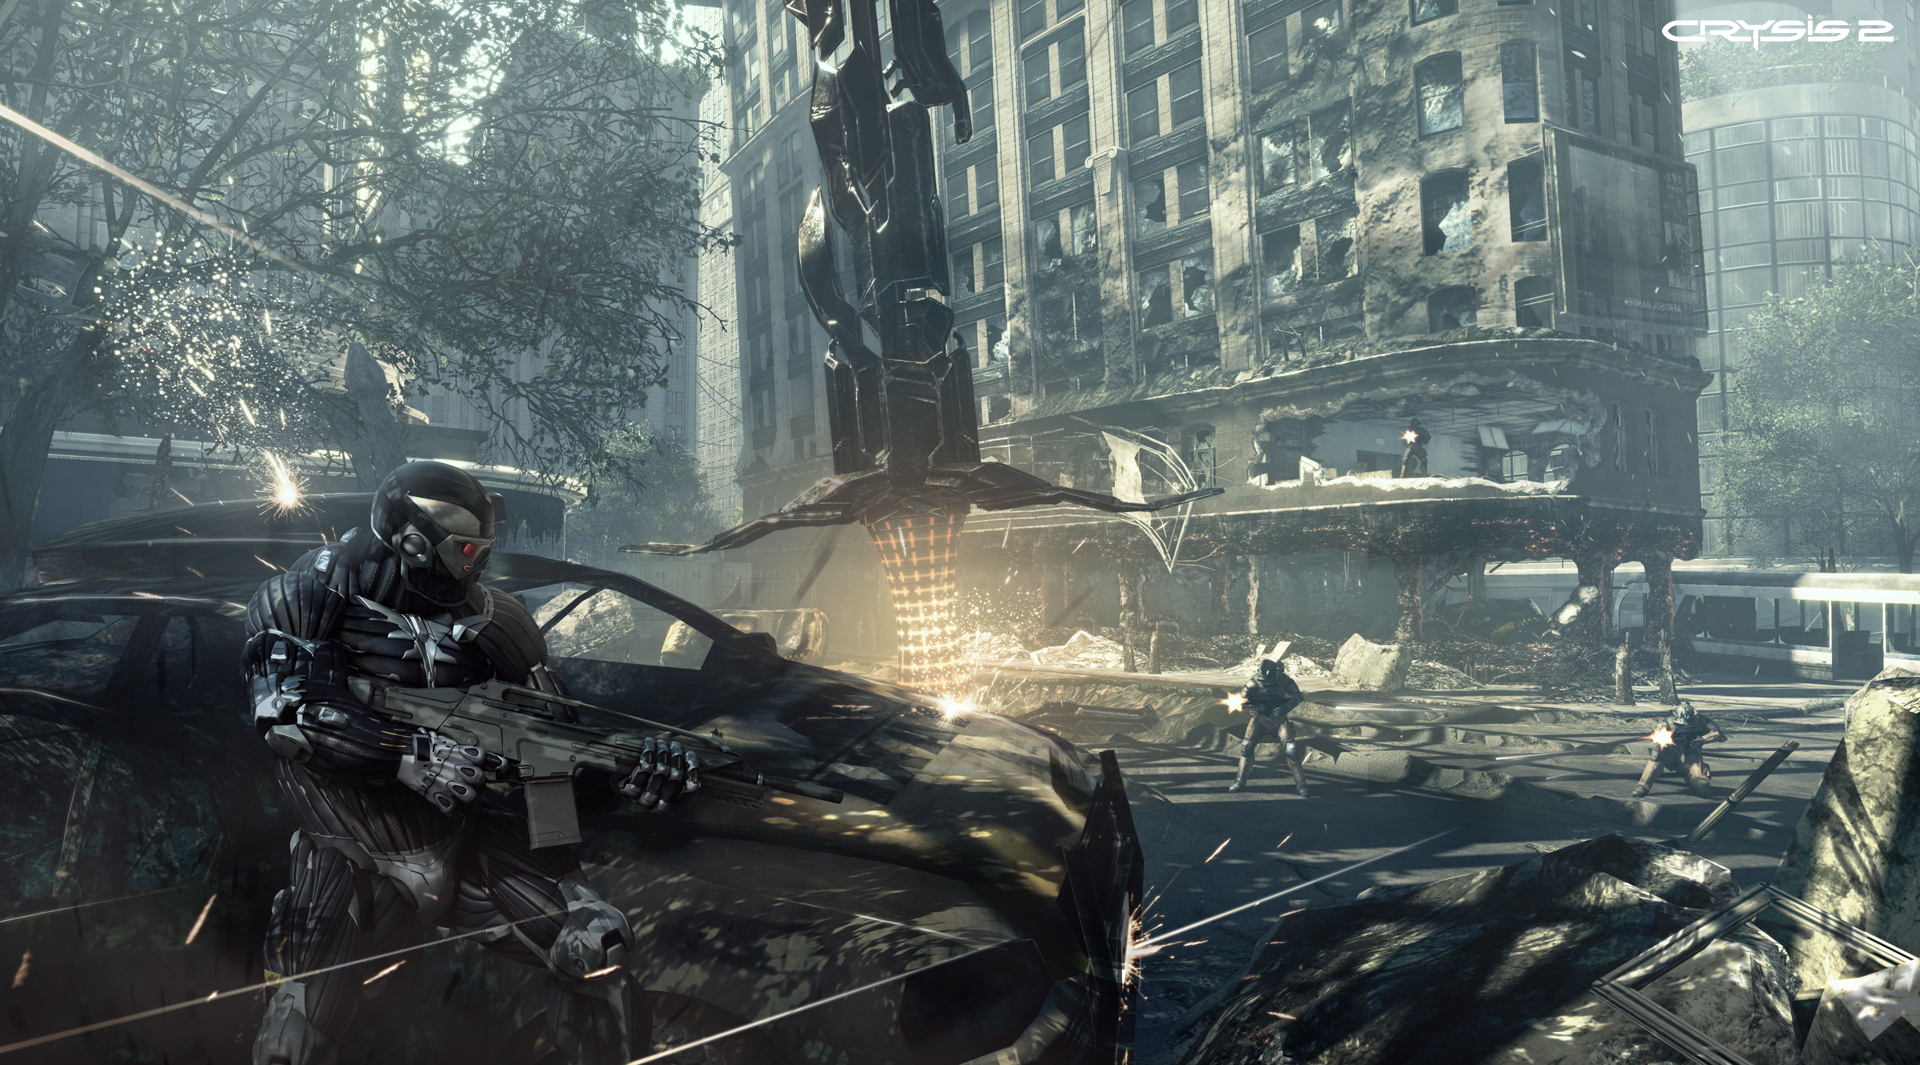 windows wallpapers hq hd wallpapers crysis 2 wallpapers crysis 2 1920x1065